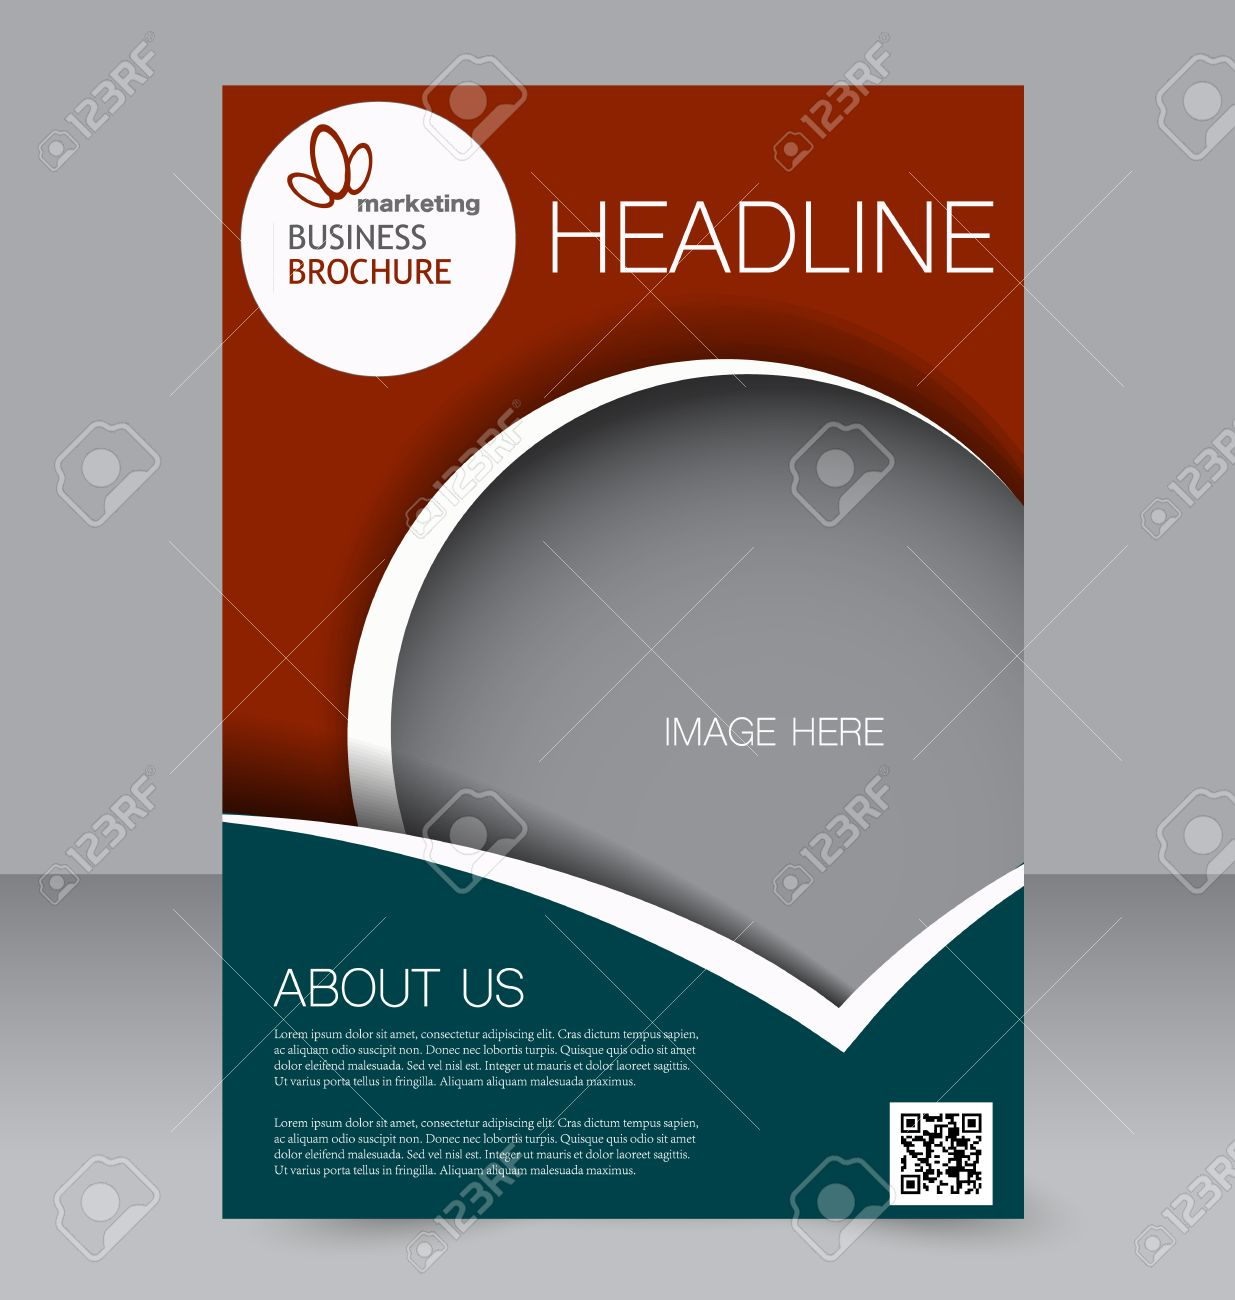 Flyer Template Brochure Design Editable A4 Poster For Business Education Presentation